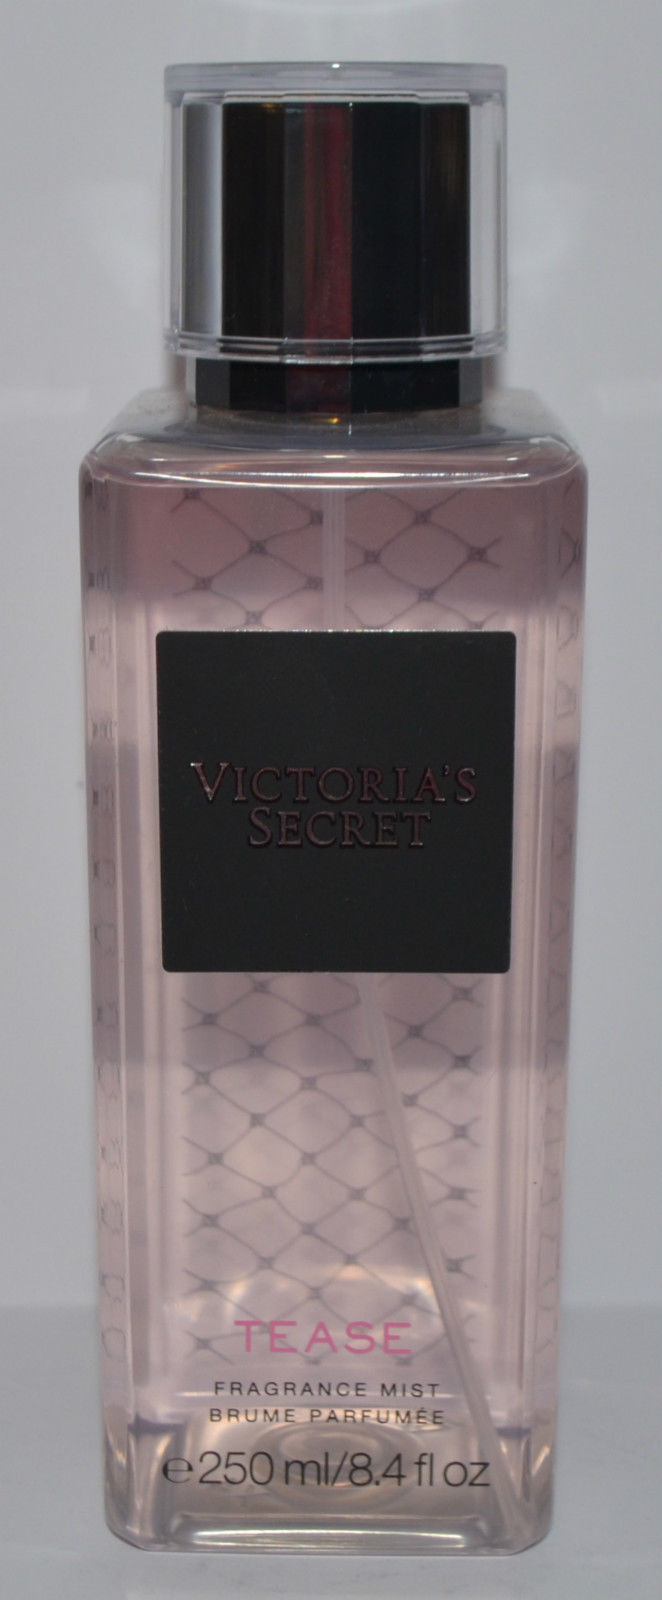 Victoria's Secret Tease Fragrance Body Mist 8.4 oz